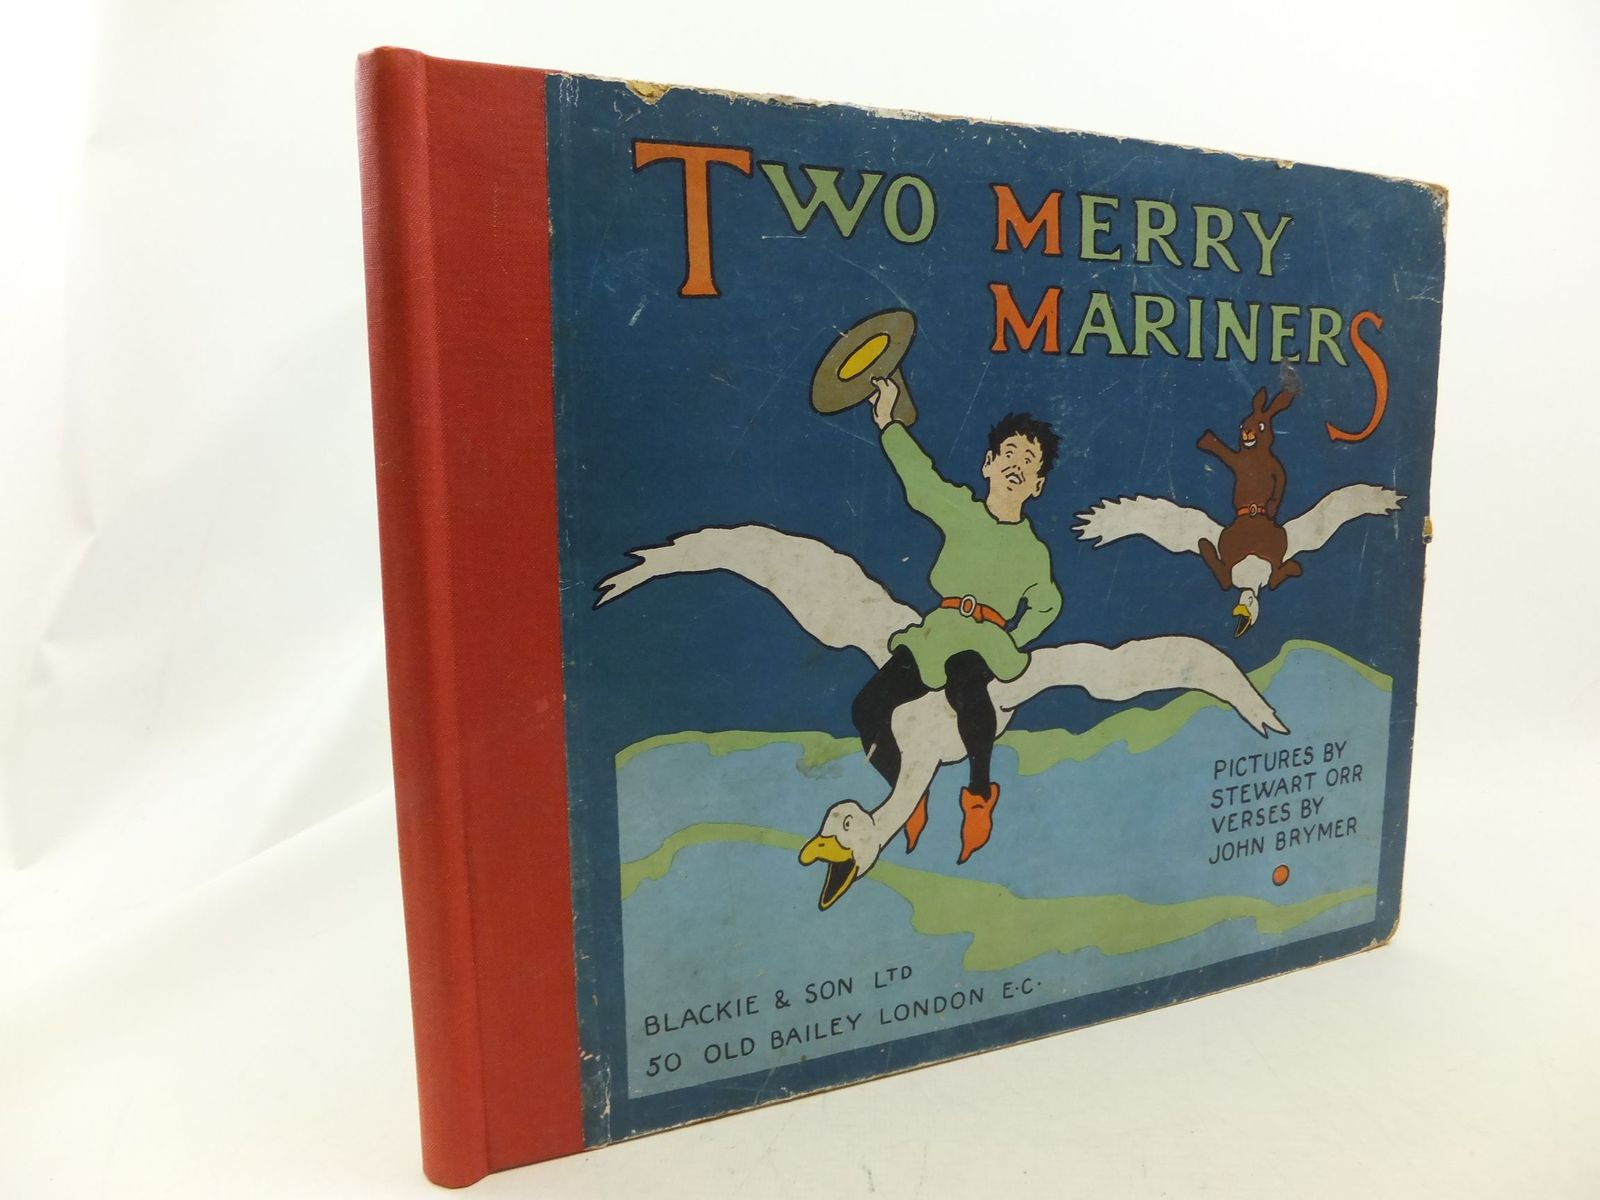 Photo of TWO MERRY MARINERS written by Brymer, John illustrated by Orr, Stewart published by Blackie & Son Ltd. (STOCK CODE: 2114541)  for sale by Stella & Rose's Books